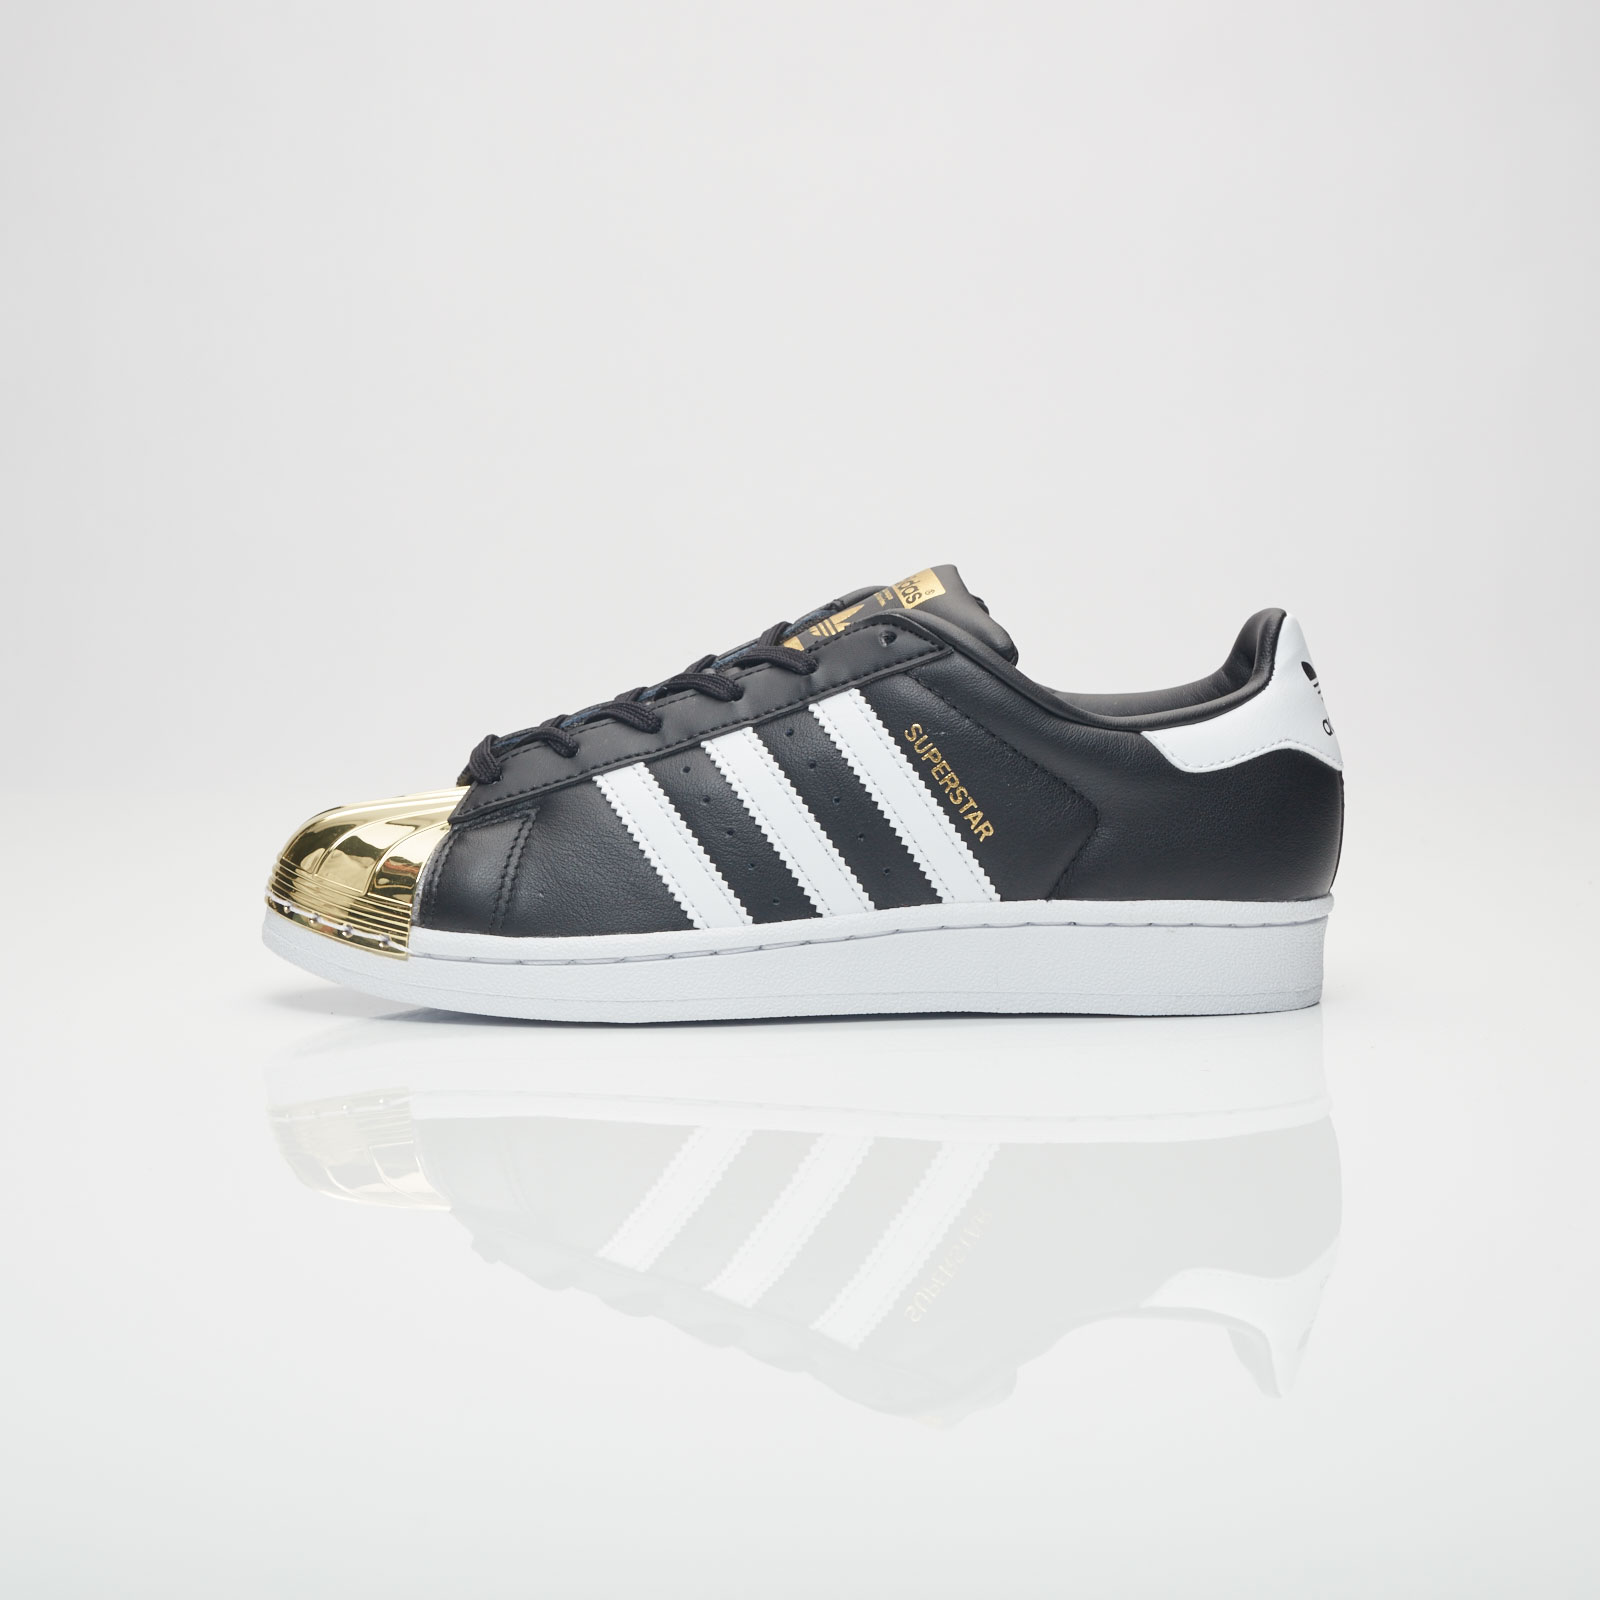 adidas Superstar 80S Metal Toe W - Bb5115 - Sneakersnstuff ... 3dd733ec2ba5d